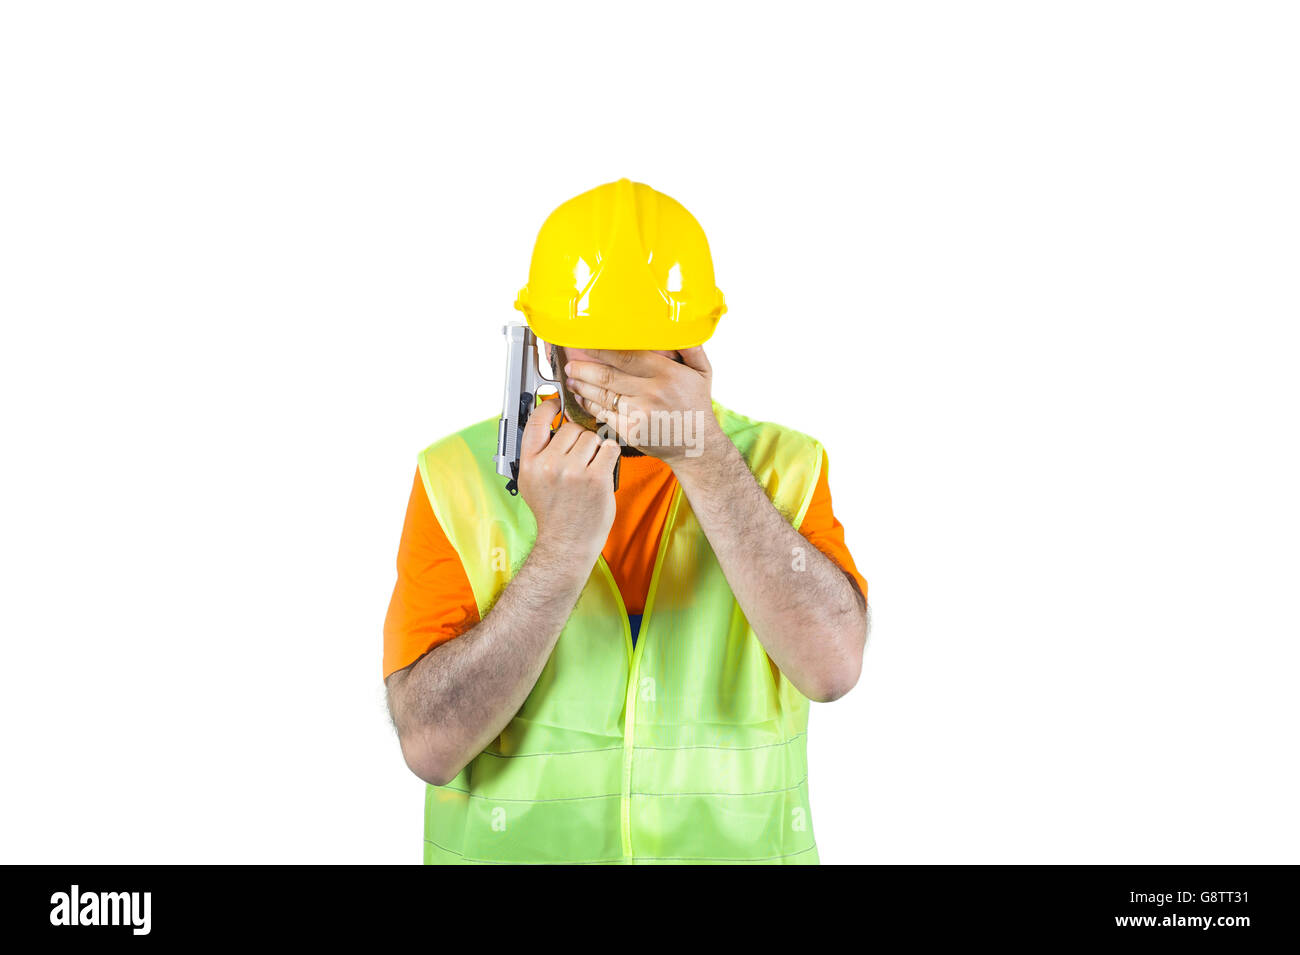 failure sadness guilty Manuel worker regretful gun in hand isolated on white portrait. - Stock Image